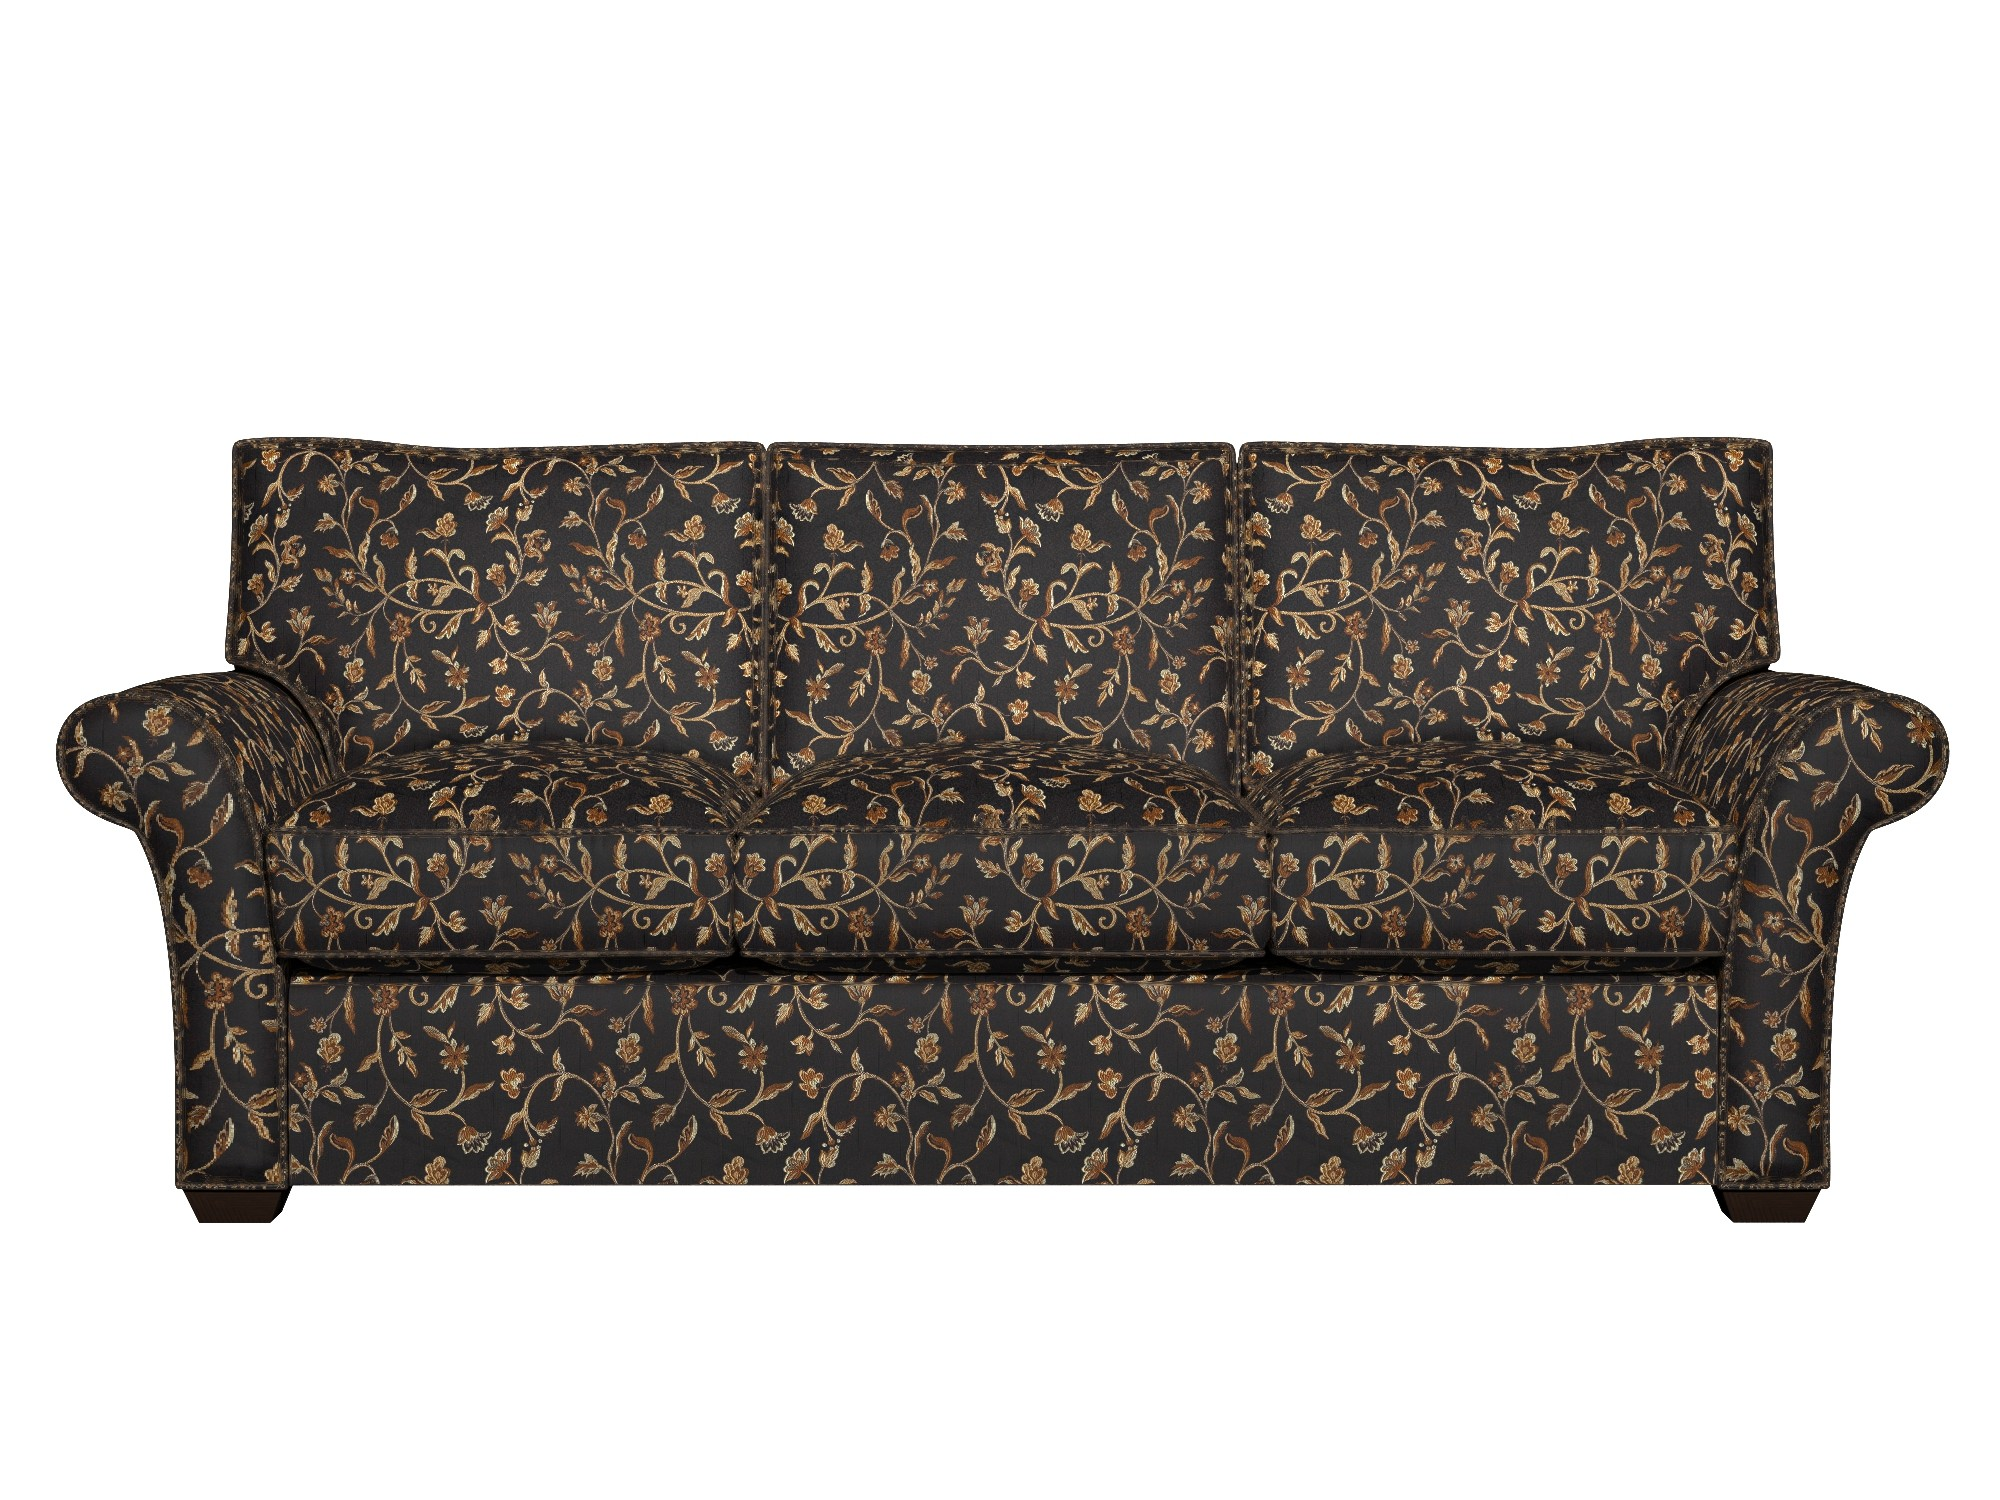 brocade sofa fabric best for with dogs a0011c midnight gold and ivory floral upholstery